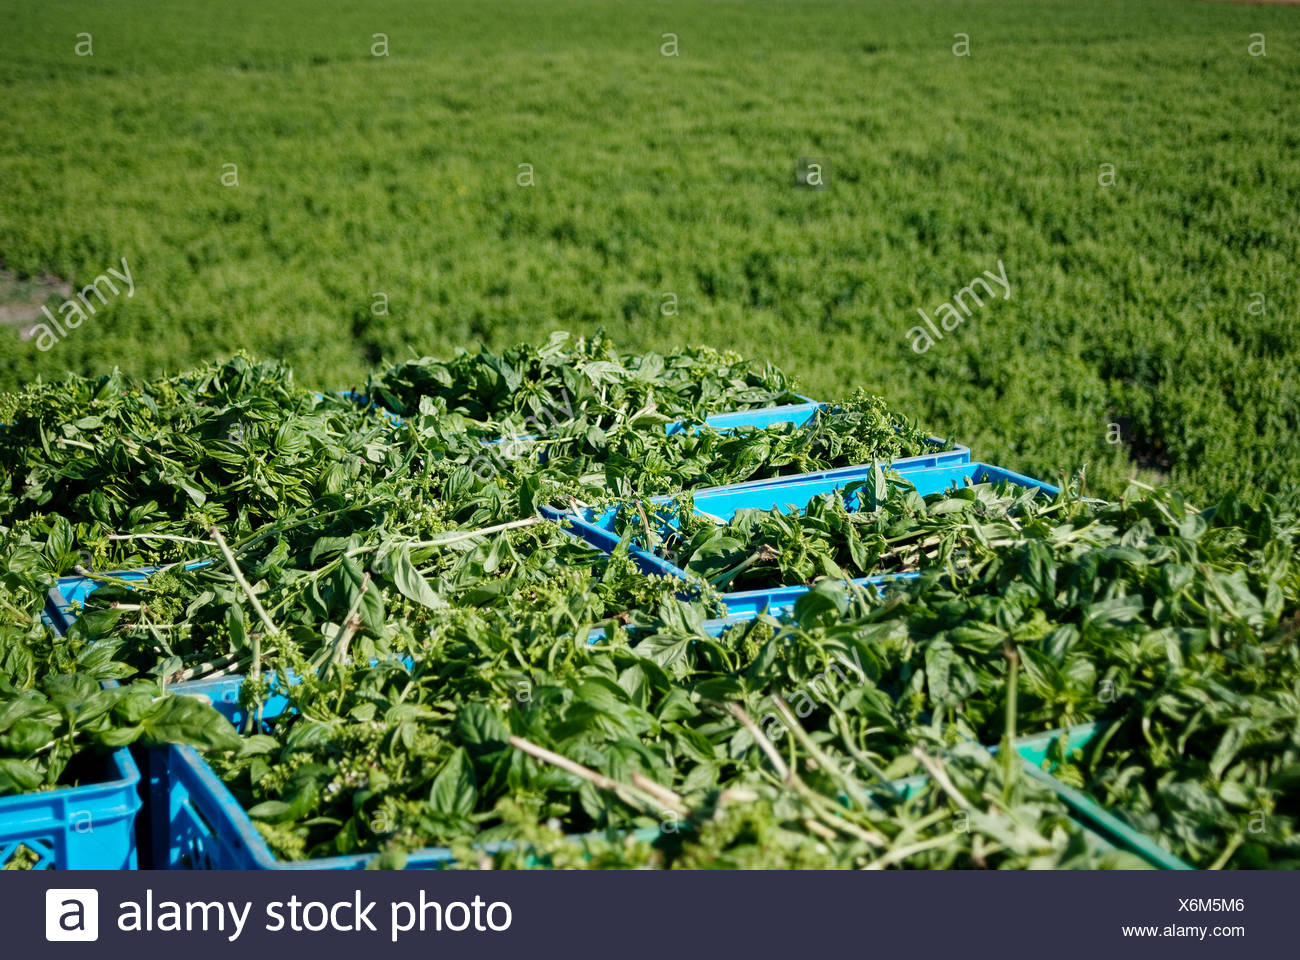 Agriculture; Farm; Harvesting; Organic; Organic farming; Organic food; Basil; baskets; Green; Rural scen; Nature; No person - Stock Image